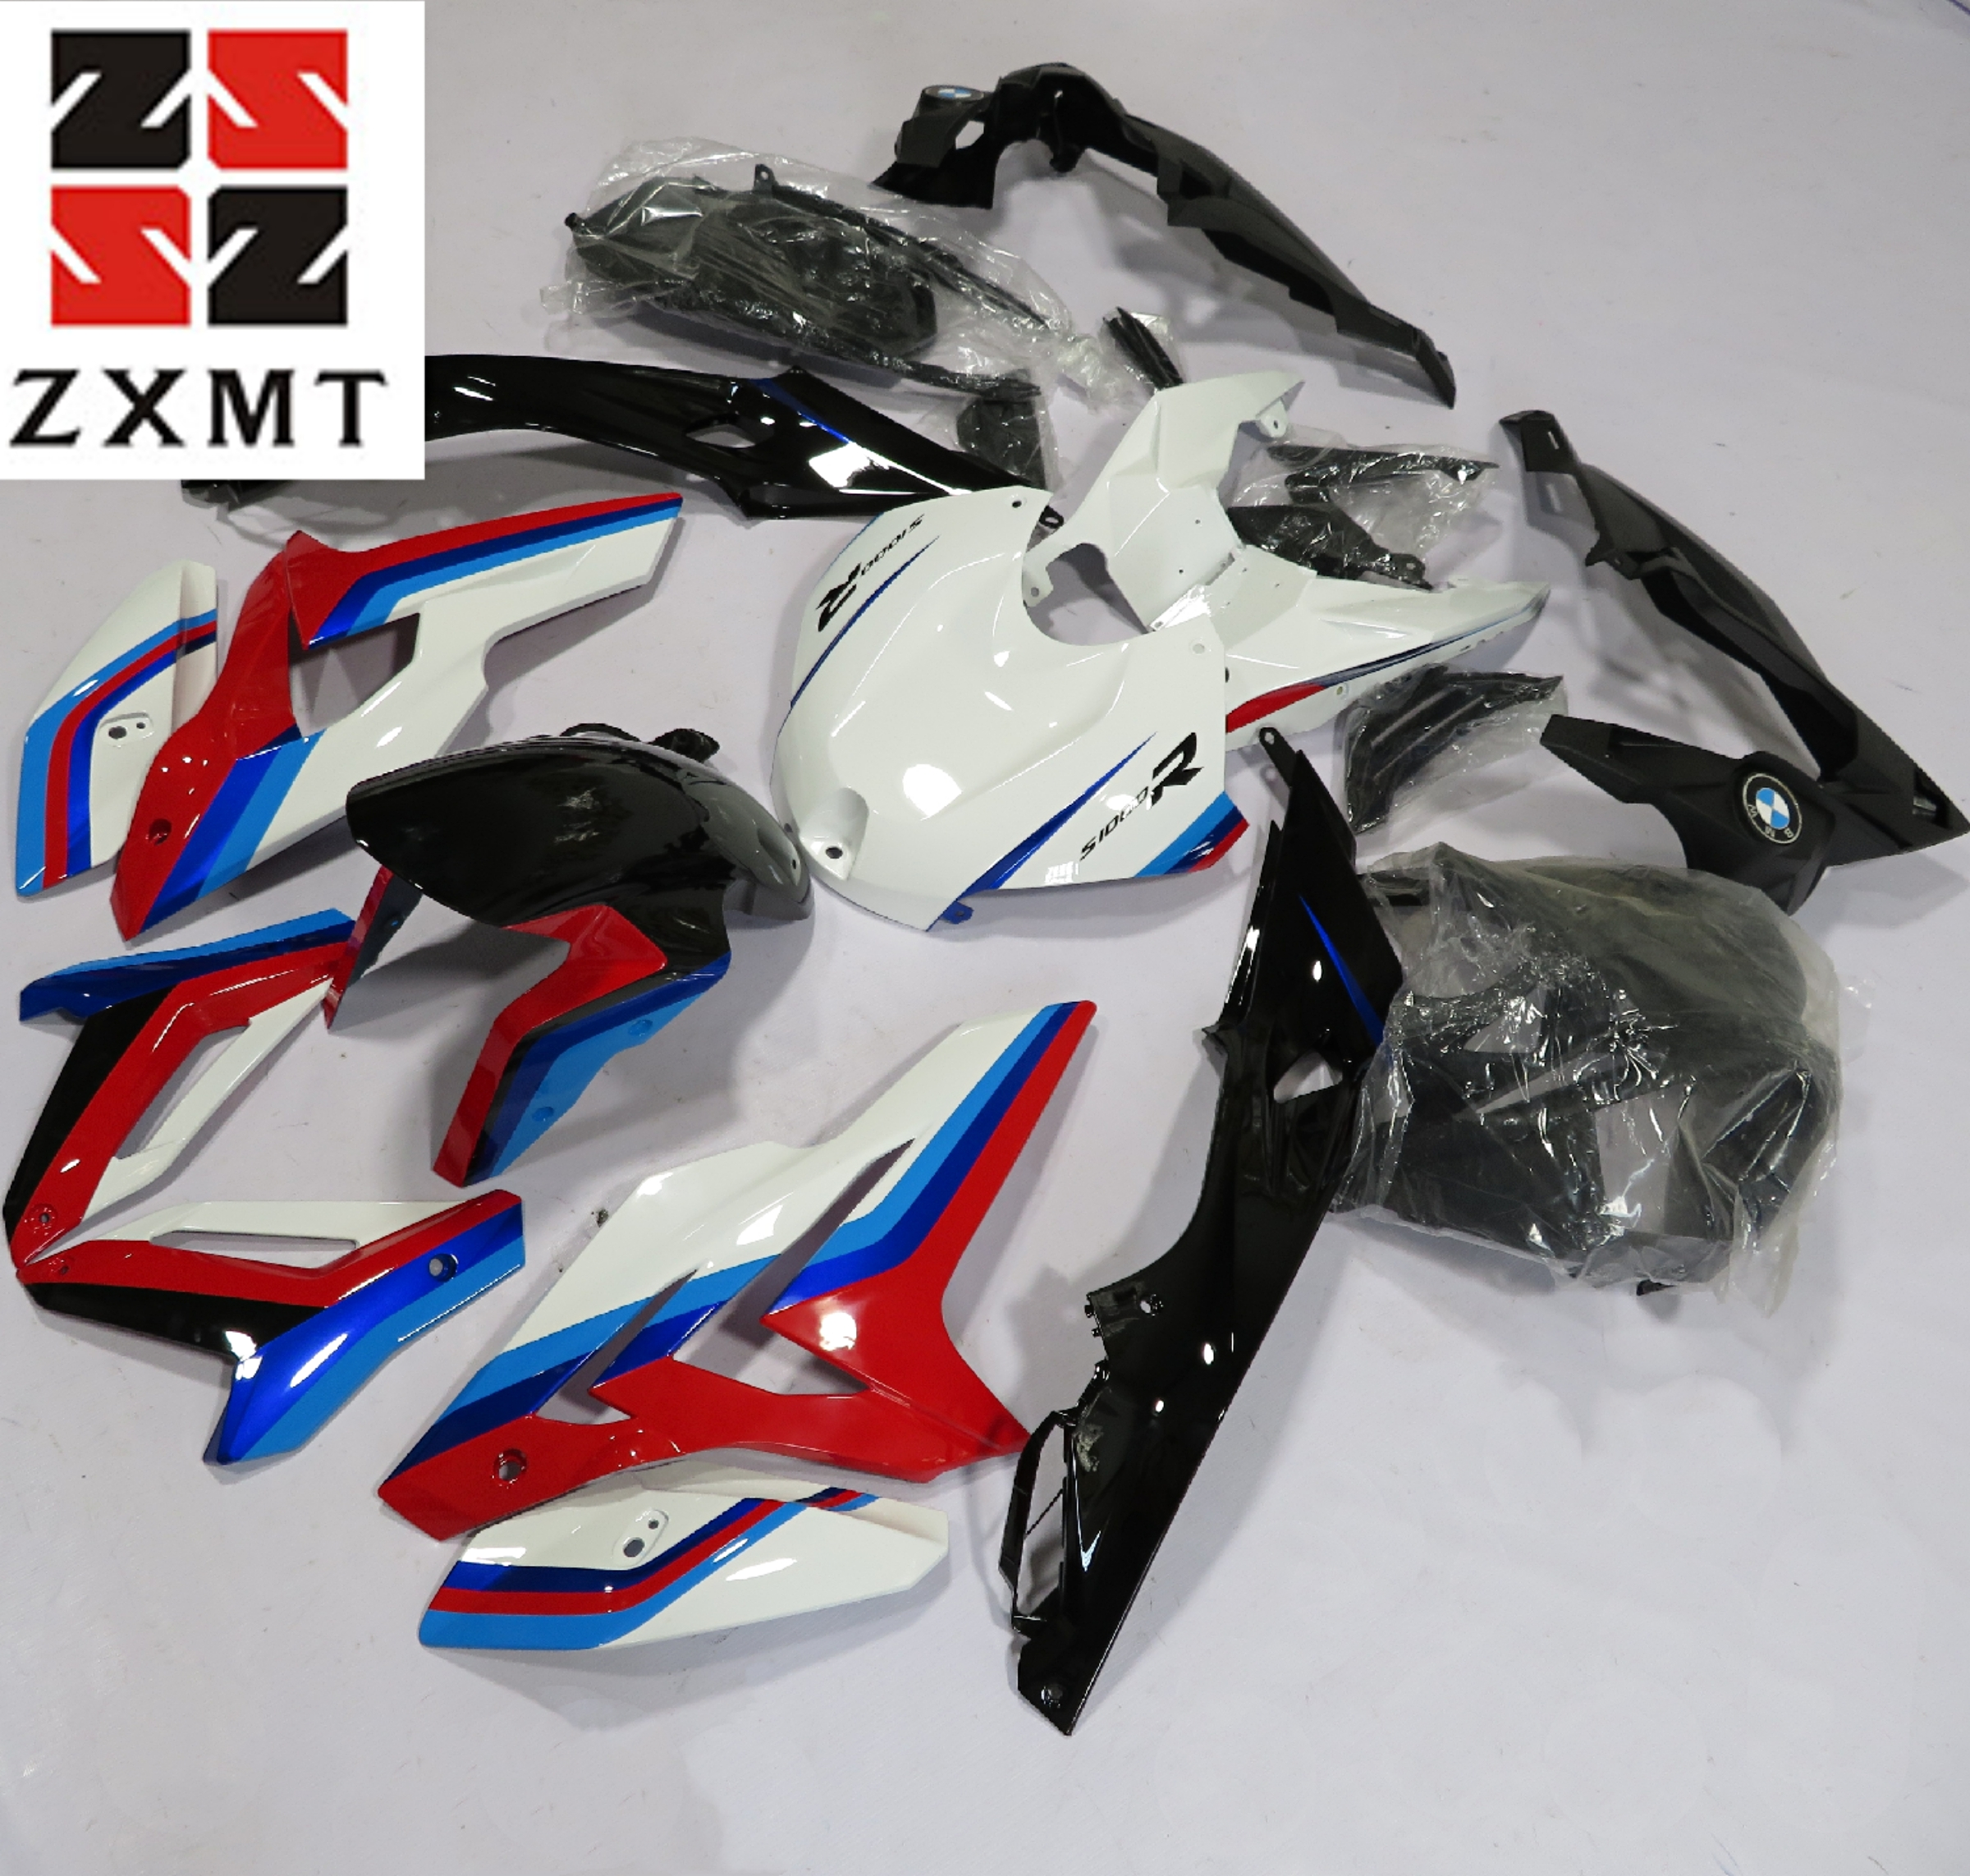 ZXMT Full Fairing Set Kit Fit For S1000R 2015 2016 2017 Complete Bodywork Panel Injection Mould S 1000R 15 16 17 Blue Red White